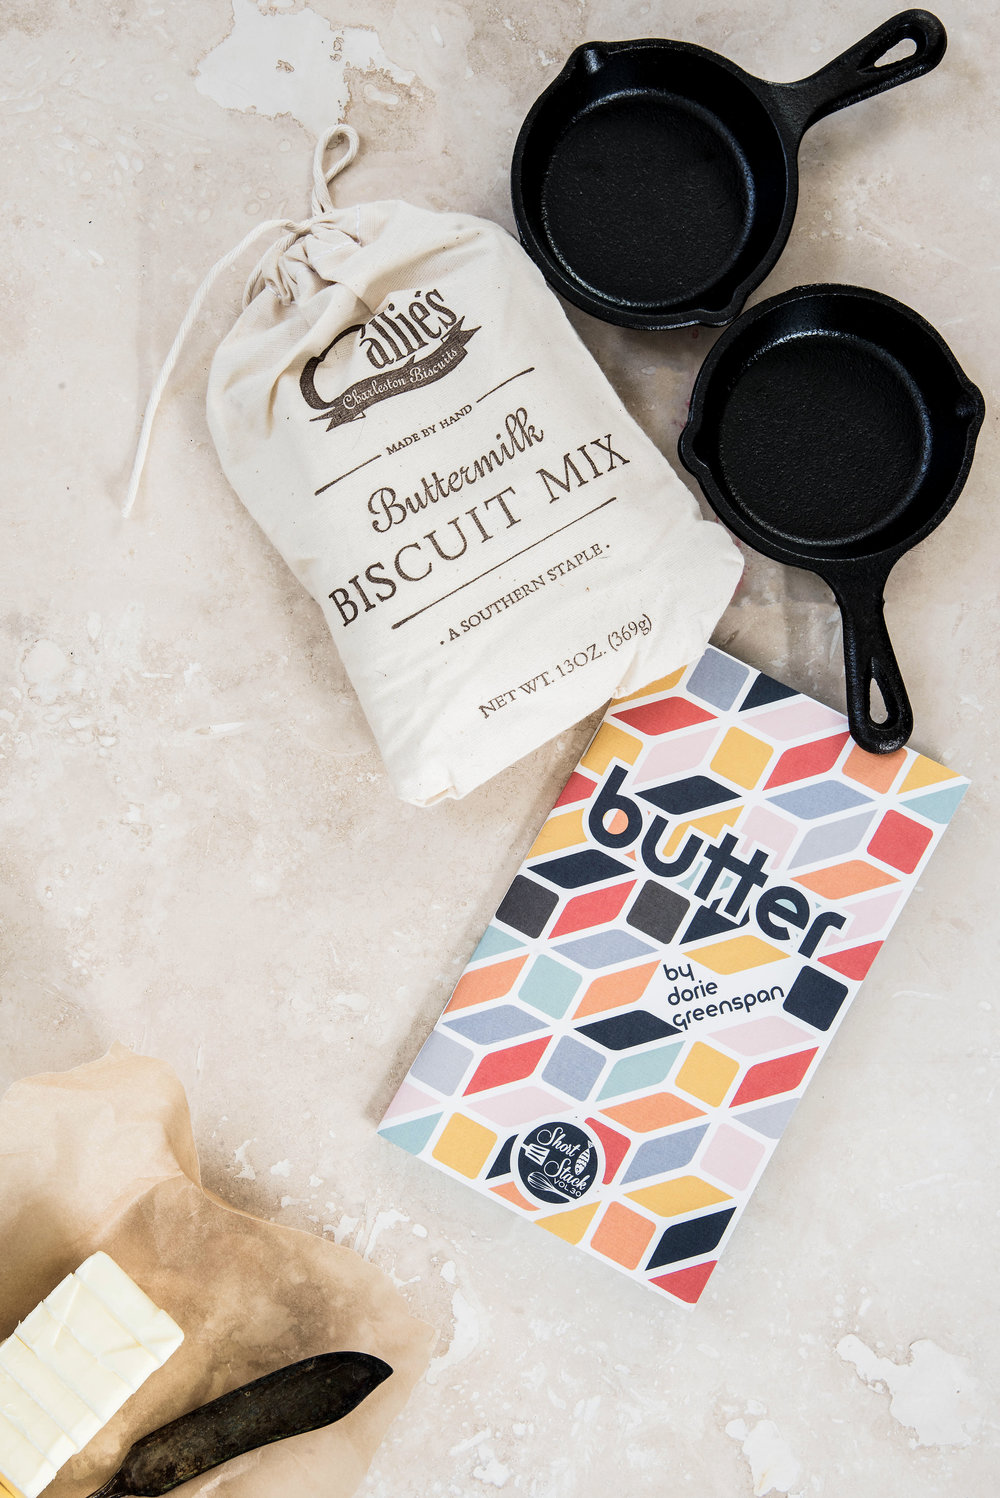 ROSE & IVY Journal Celebrate the Season The ROSE & IVY Gift Guide For the Global Foodie Callie's Biscuits and Dori Greenspan Short Stack Butter